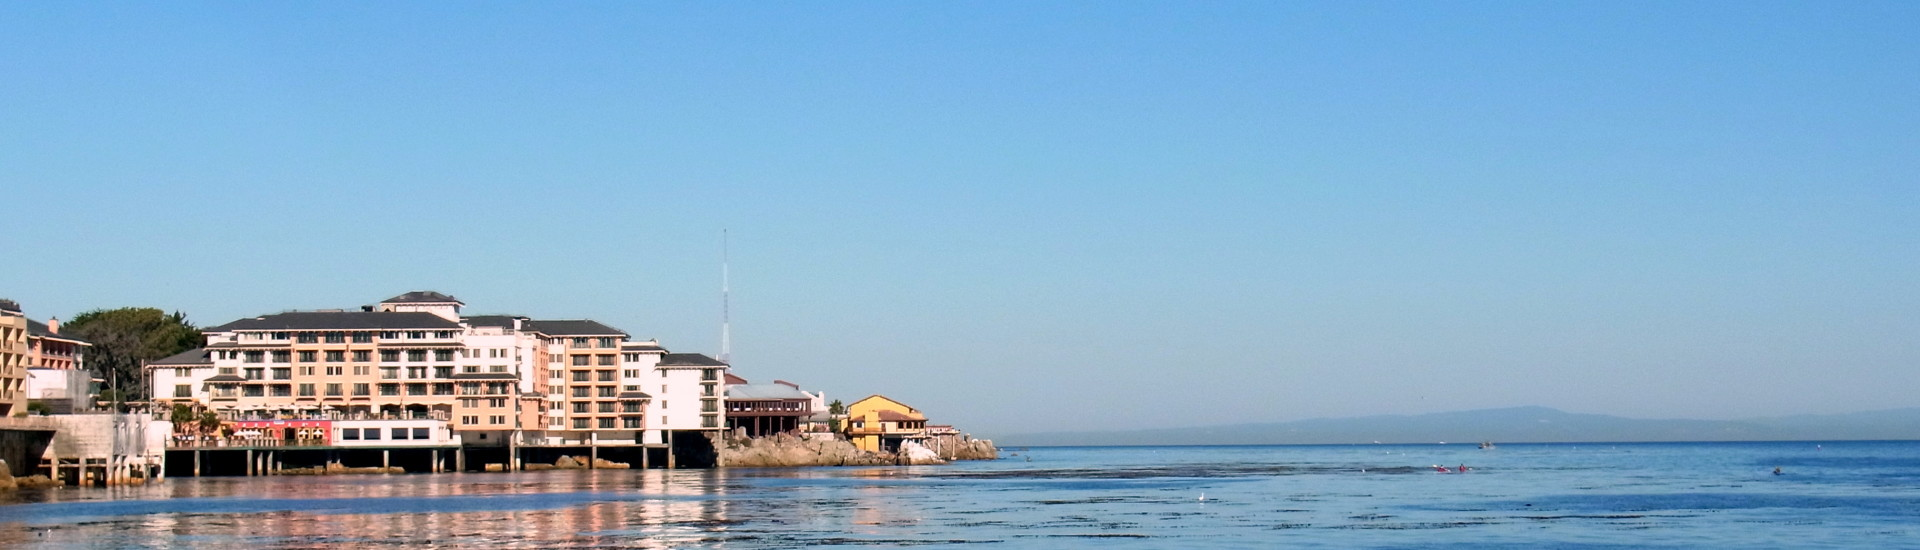 Why you should visit Monterey on your next California road trip - LiveRecklessly.com